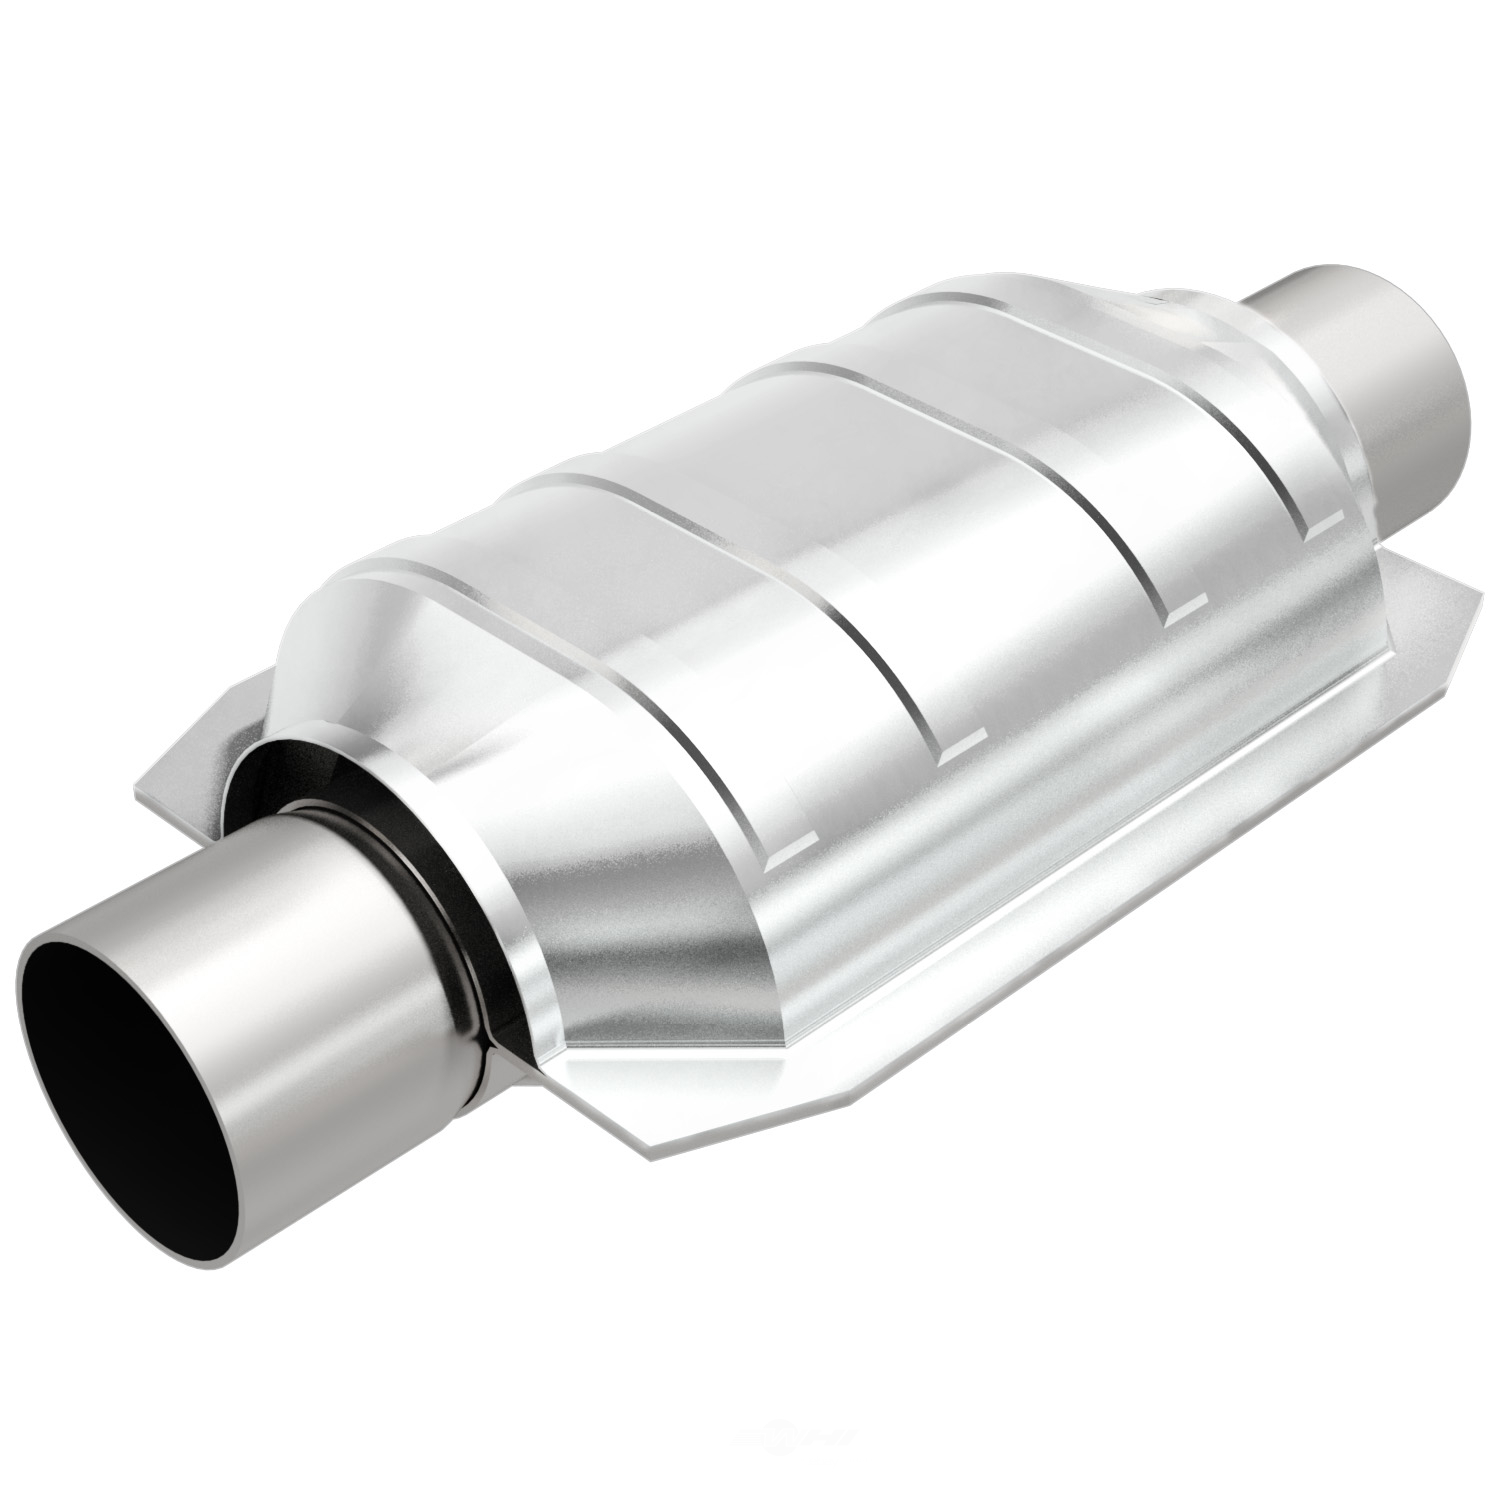 MAGNAFLOW NEW YORK CONVERTER - 2.50in. Universal California OBDII Catalytic Converter - MNY 447206